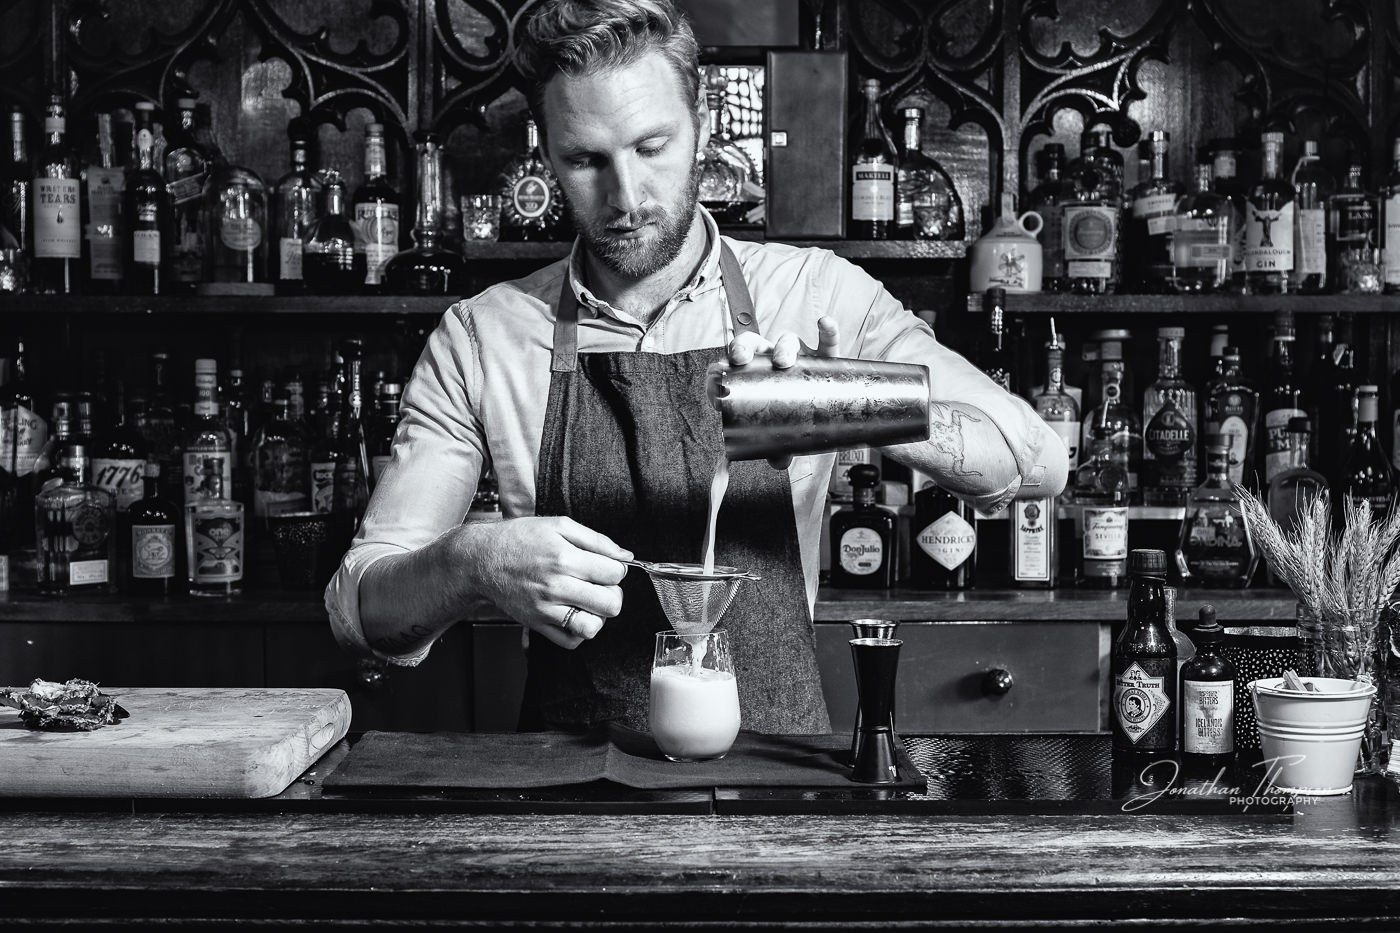 A black and white of Calum Adams, a mixologist, pouring a cocktail from the shaker through a sieve into a glass